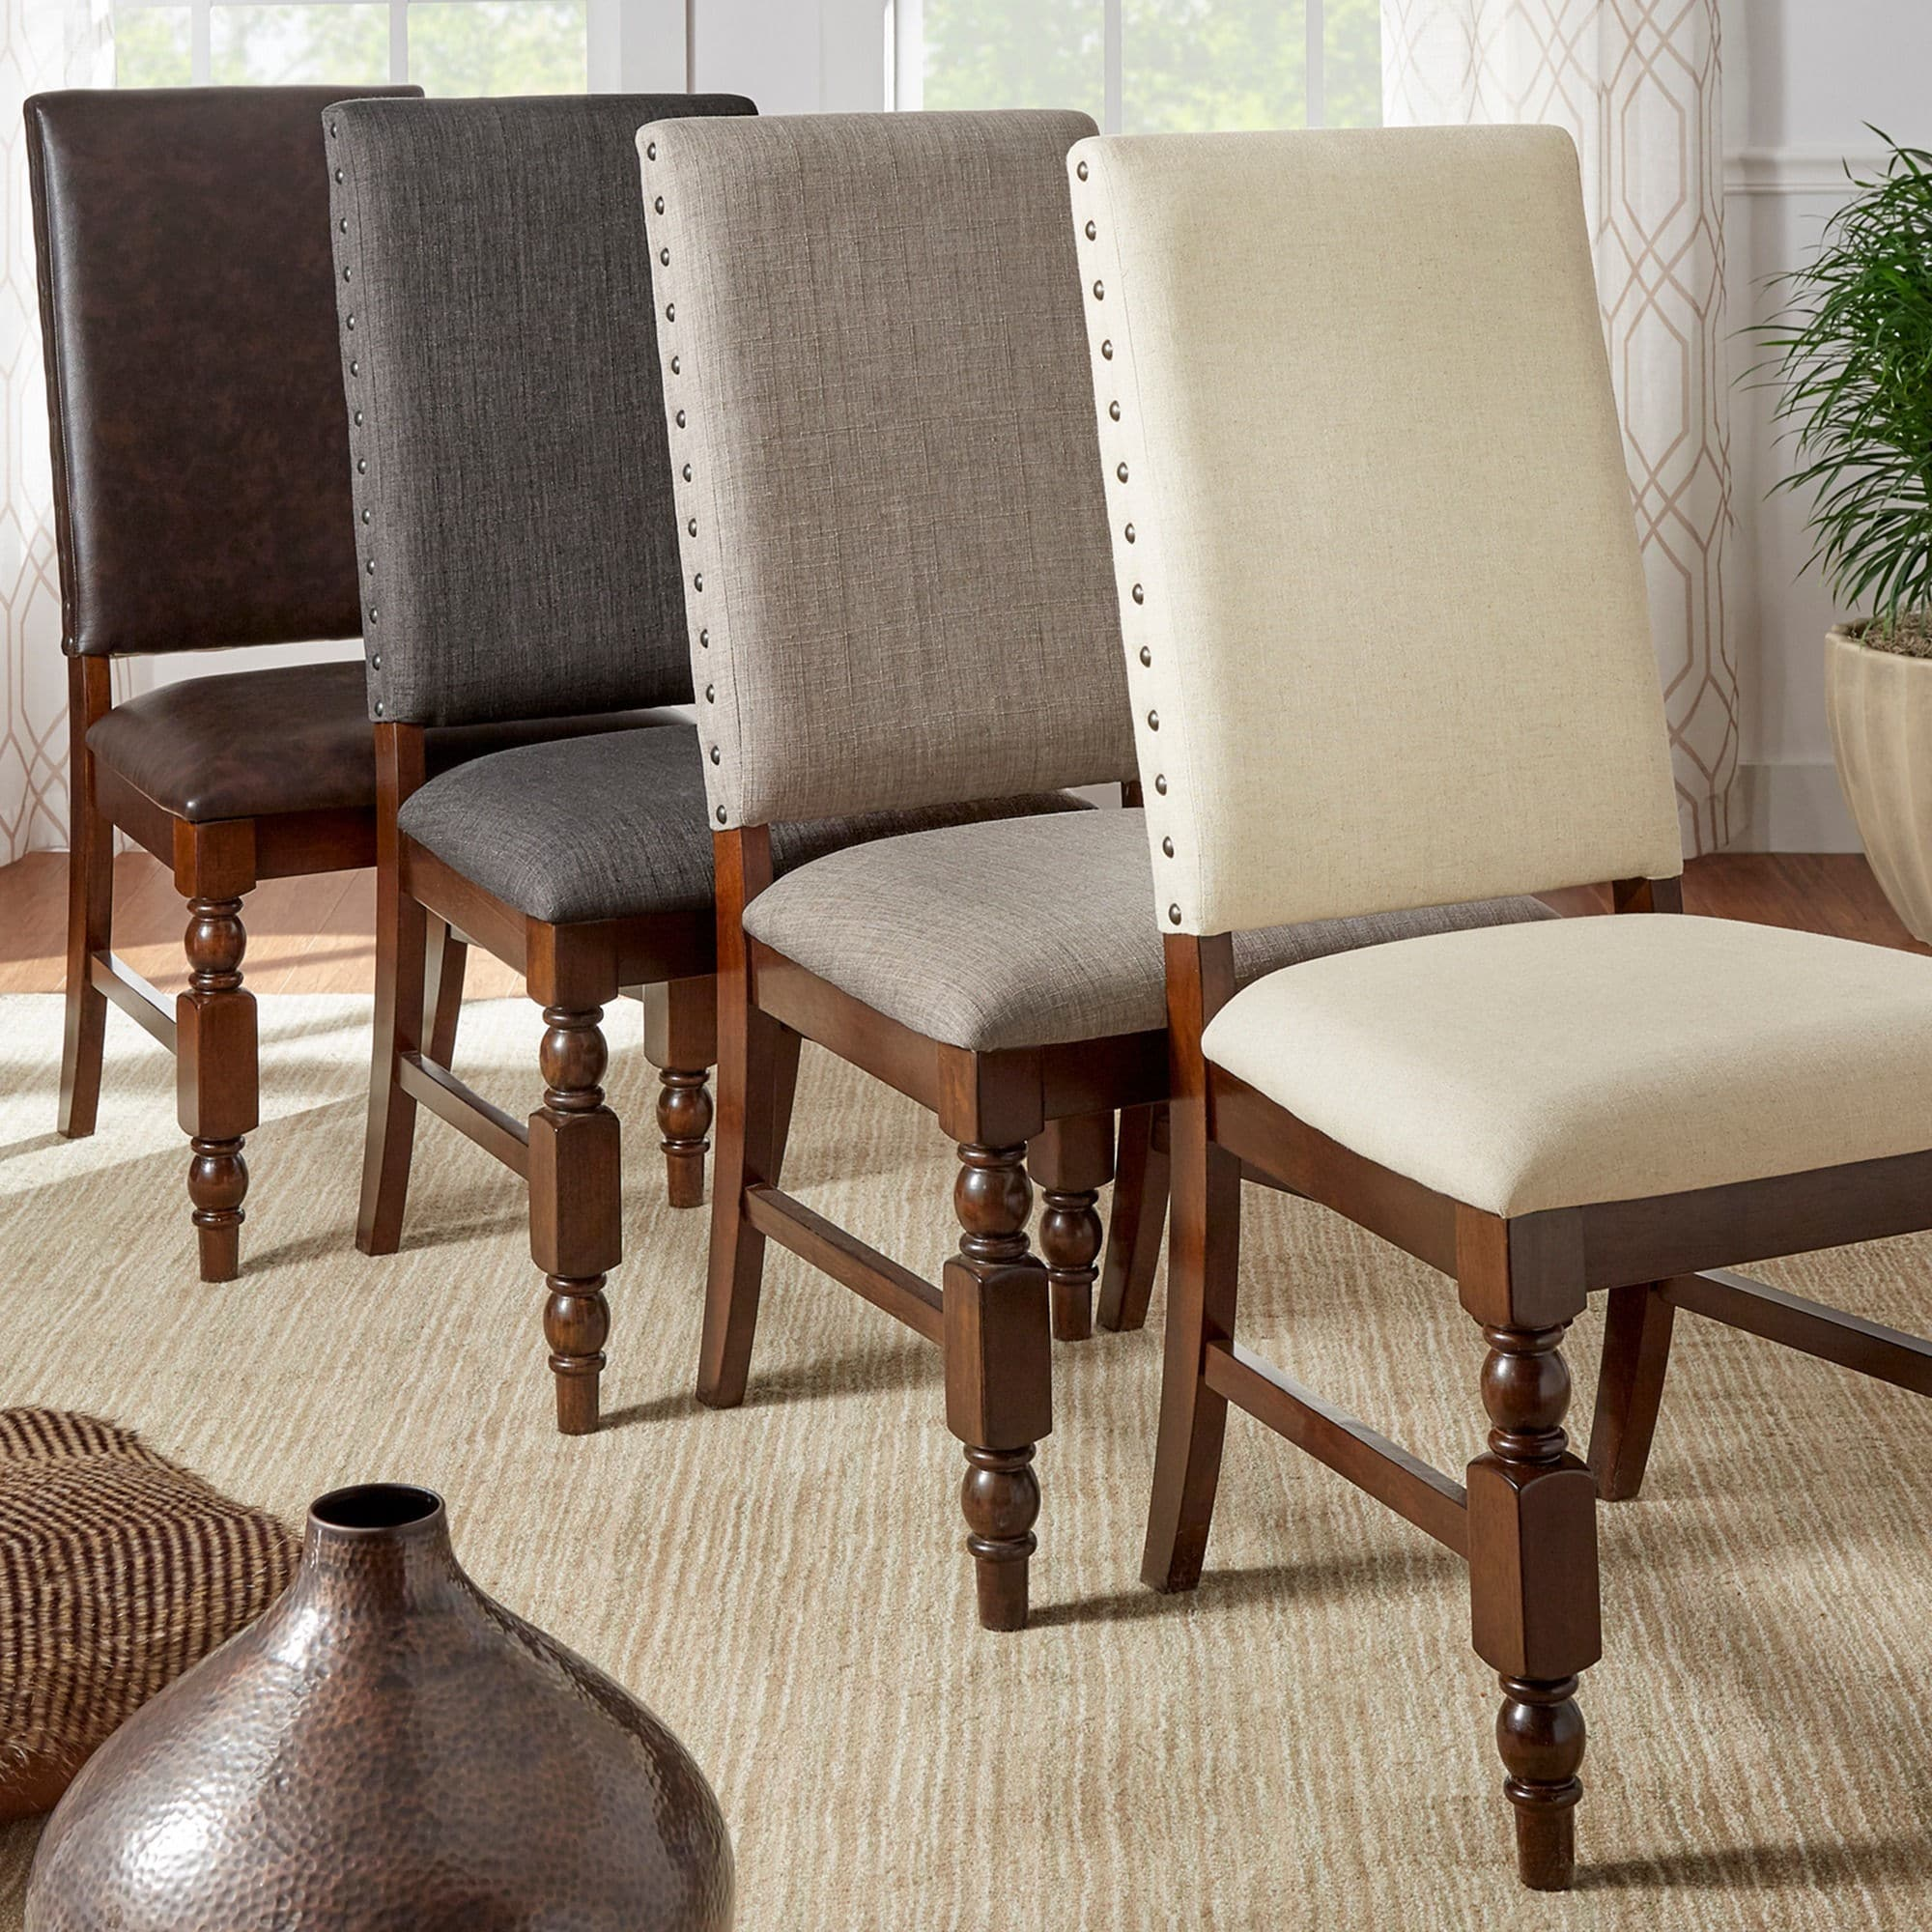 Flatiron Nailhead Upholstered Dining Chairs